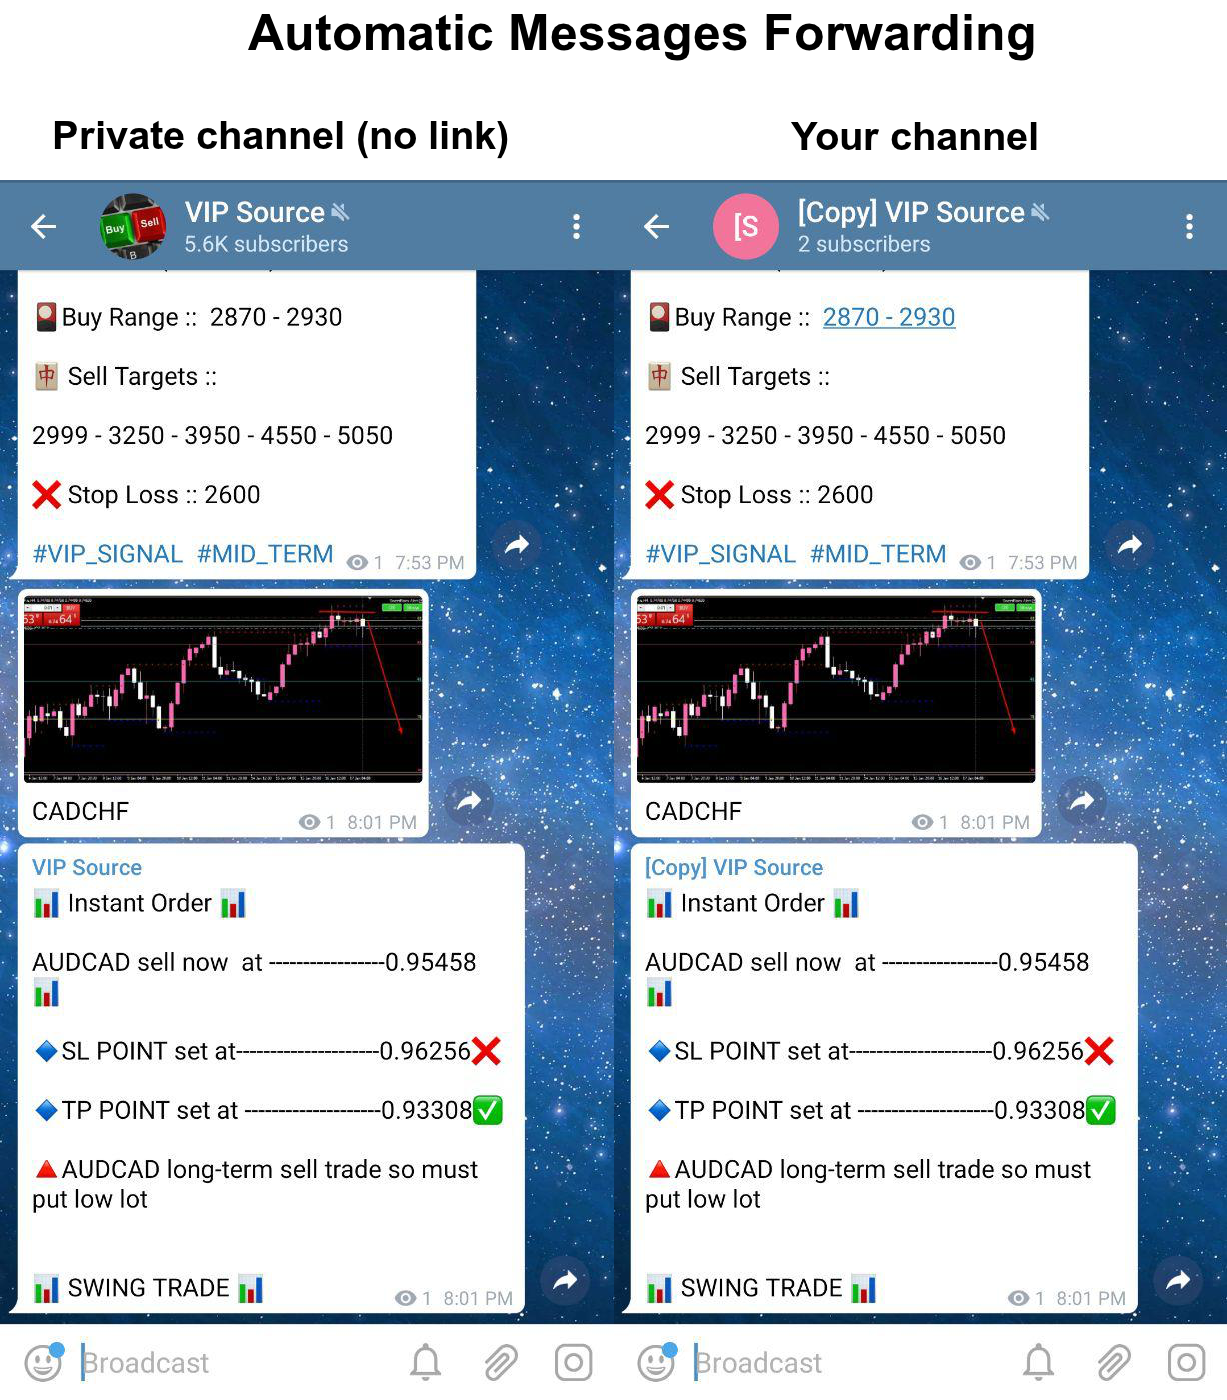 Telespace: MultiFeed Bot - Automatic Telegram Messages Forwarder